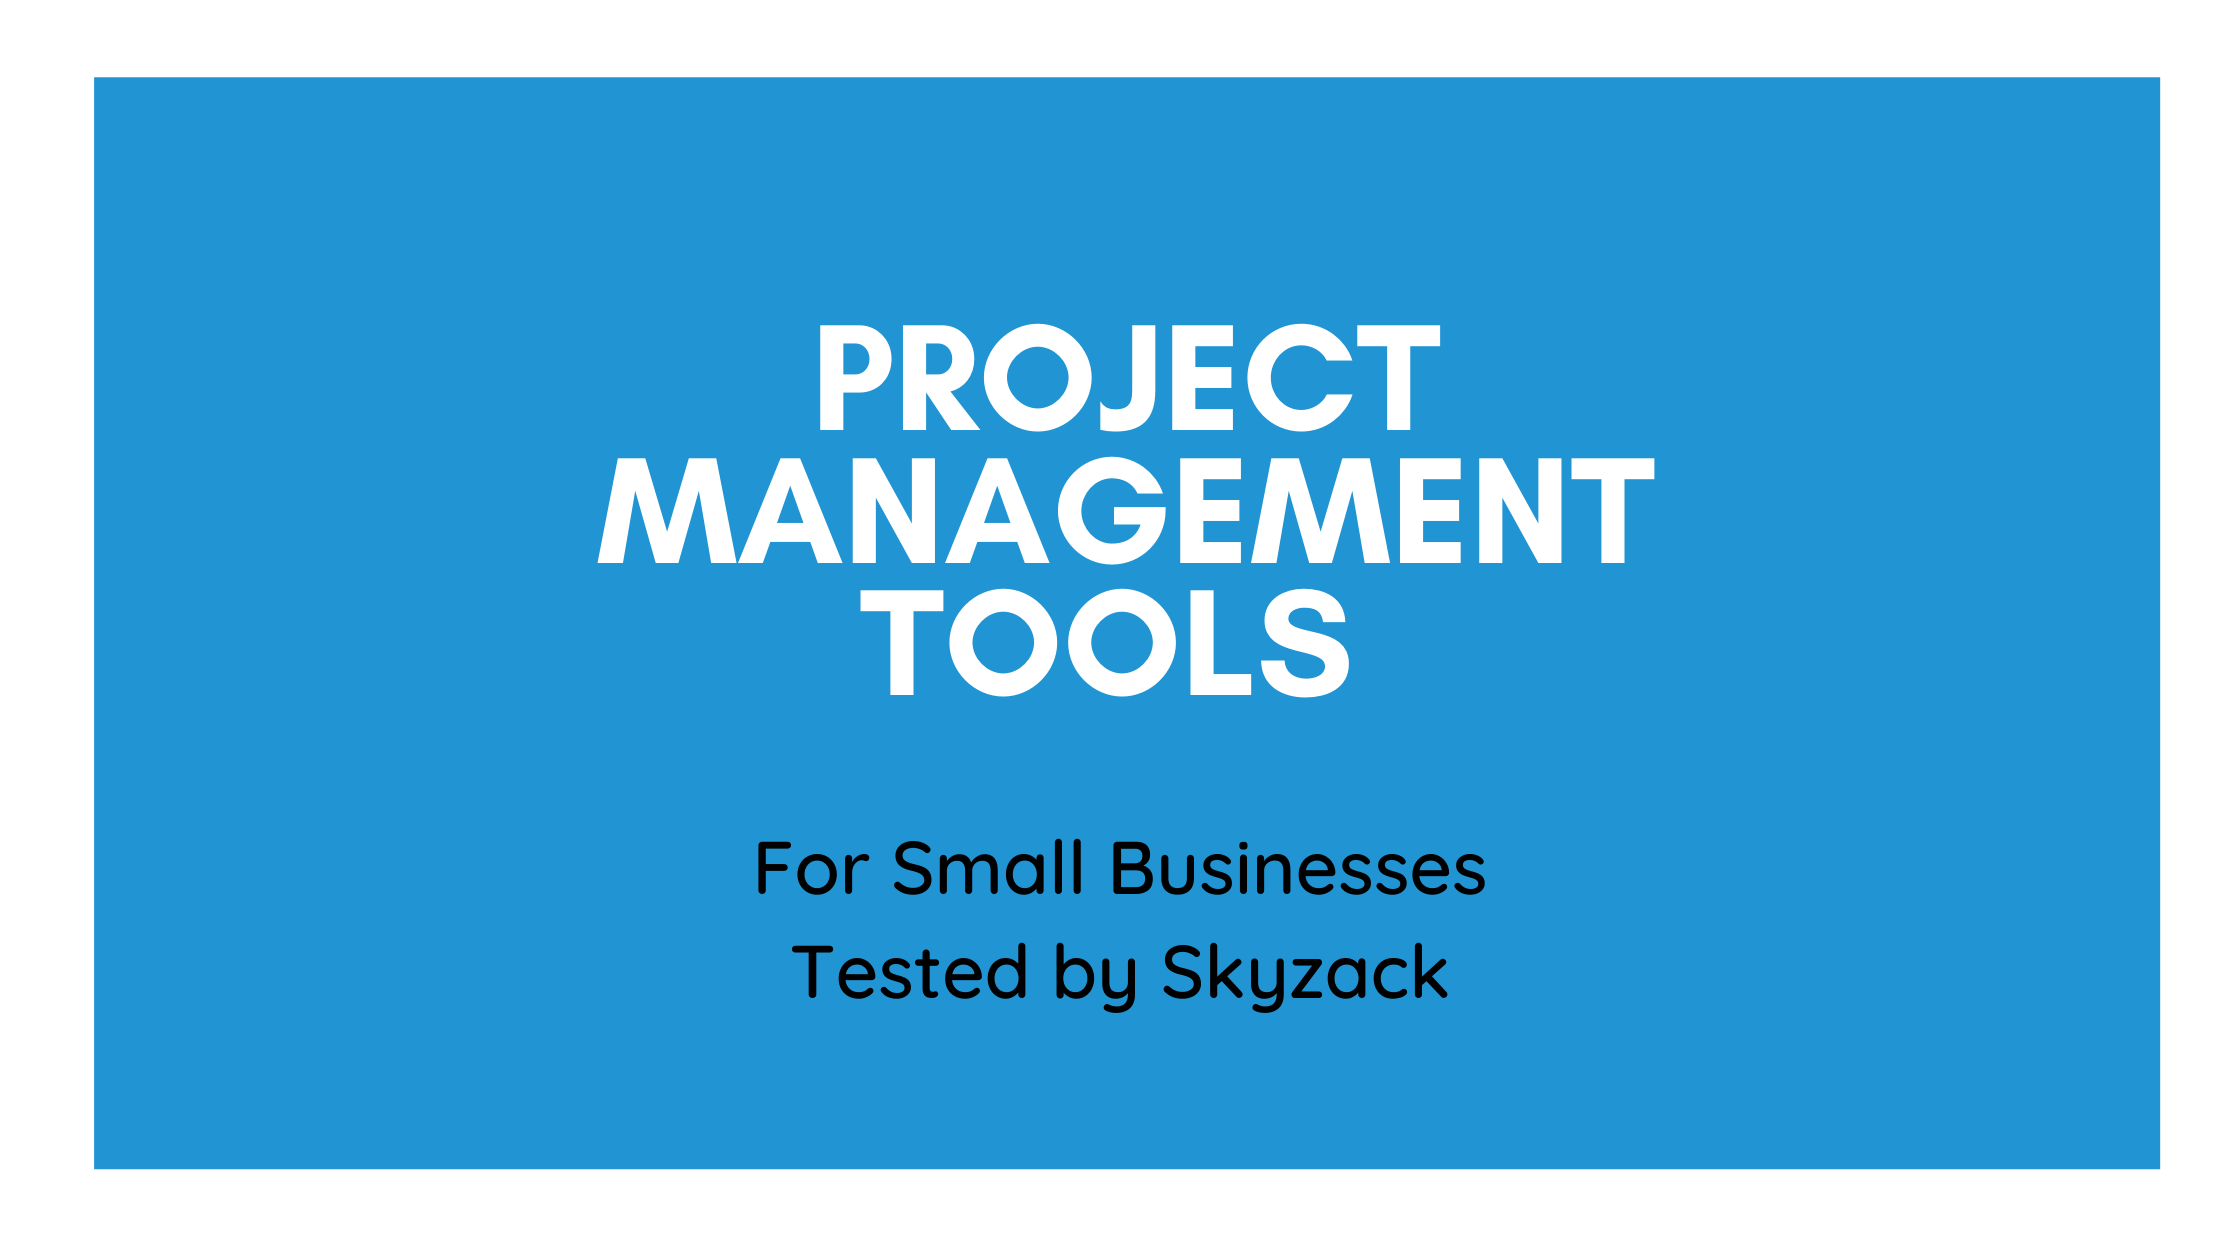 Project management tools (FREE) for small businesses